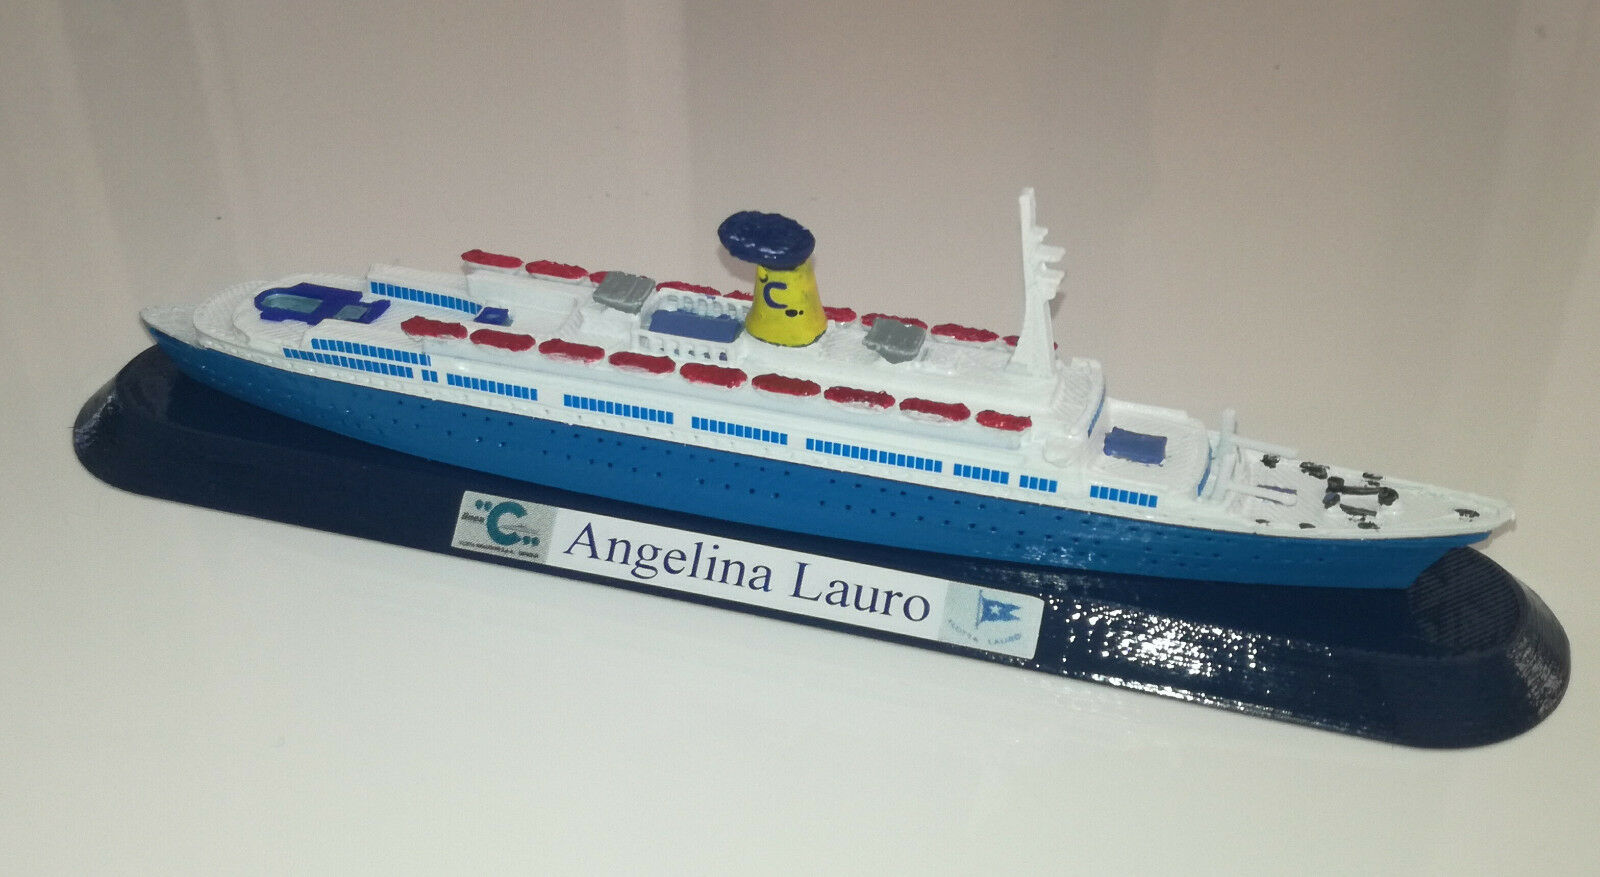 Angelina Lauro ex Oranje model ship scale 1 1250 funnel Costa Crociere 1977   79